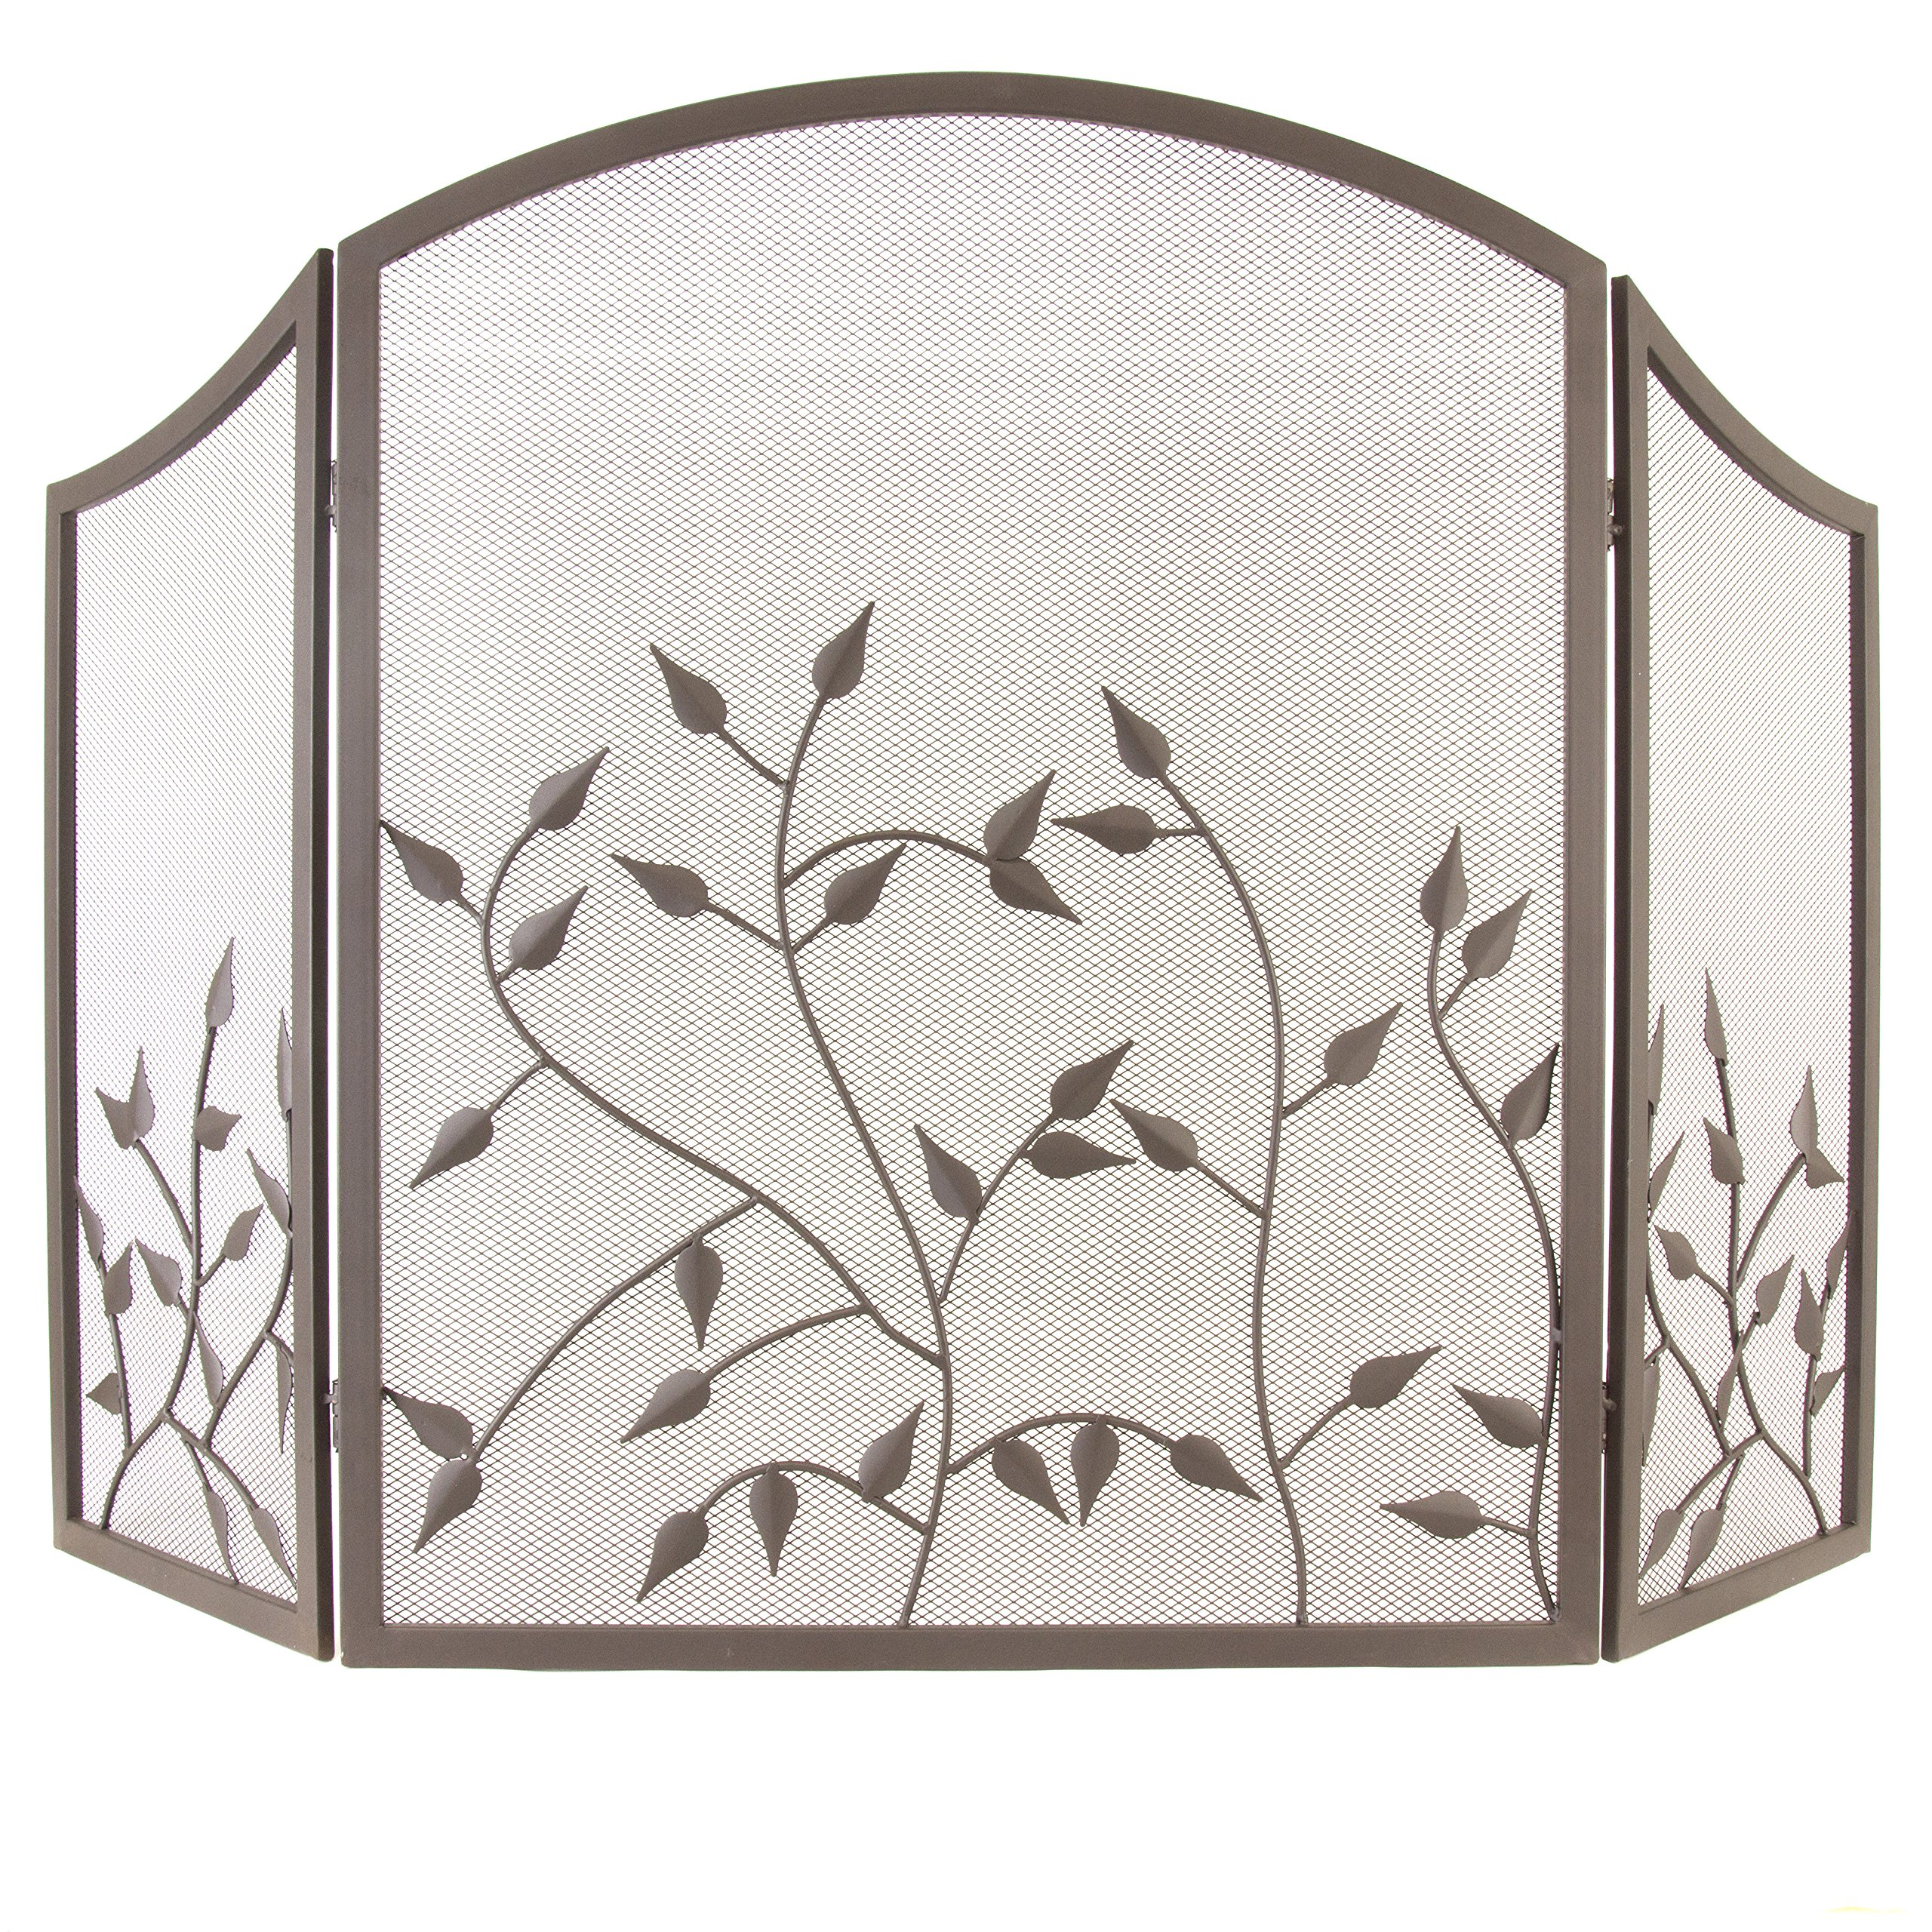 Pleasant Hearth FA092SA Waverly Fireplace Screen by Pleasant Hearth